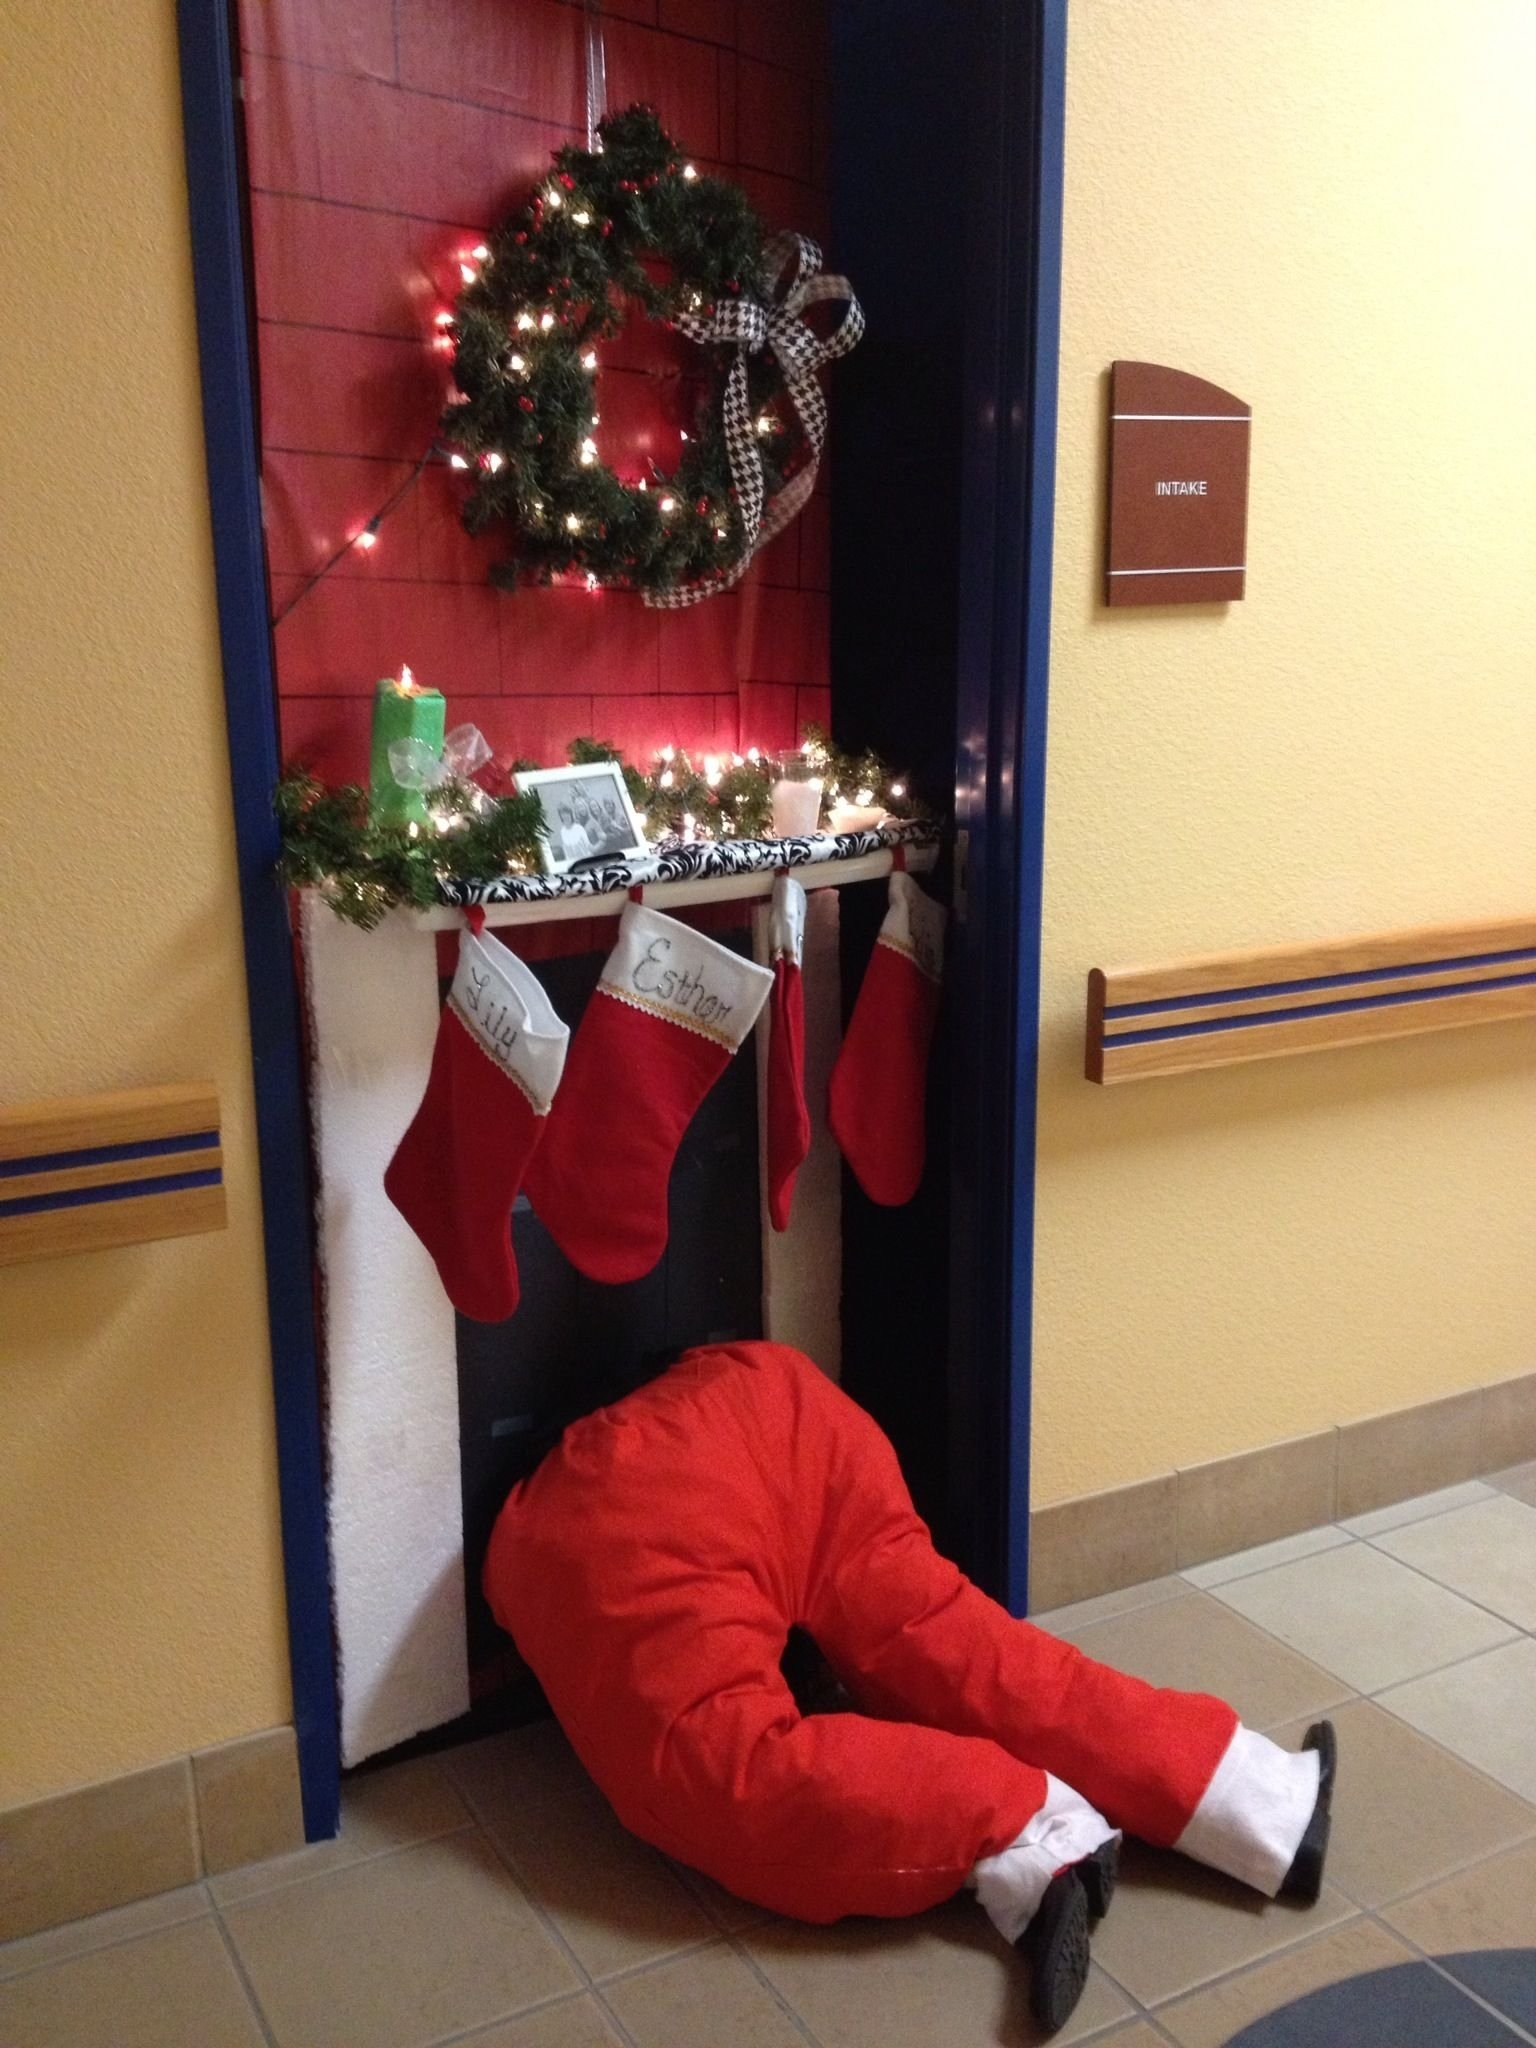 10 Most Recommended Christmas Door Decorating Contest Ideas wow factor for cubicle decorating contest google search holiday 3